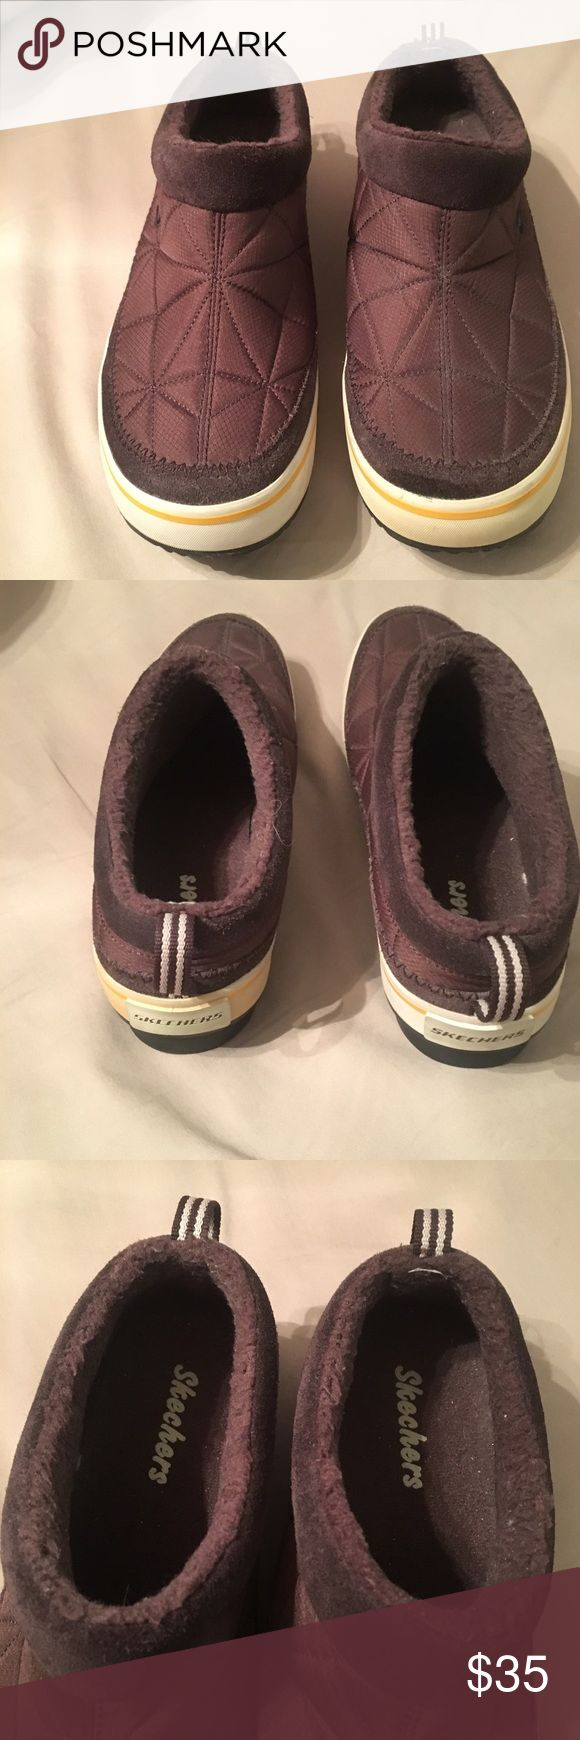 Skechers slip on rubber sole walking shoe. Skechers slip on rubber sole walking shoe. Sz 8.5 Excellent, like new condition. These are very comfy and stylish.' Shoes